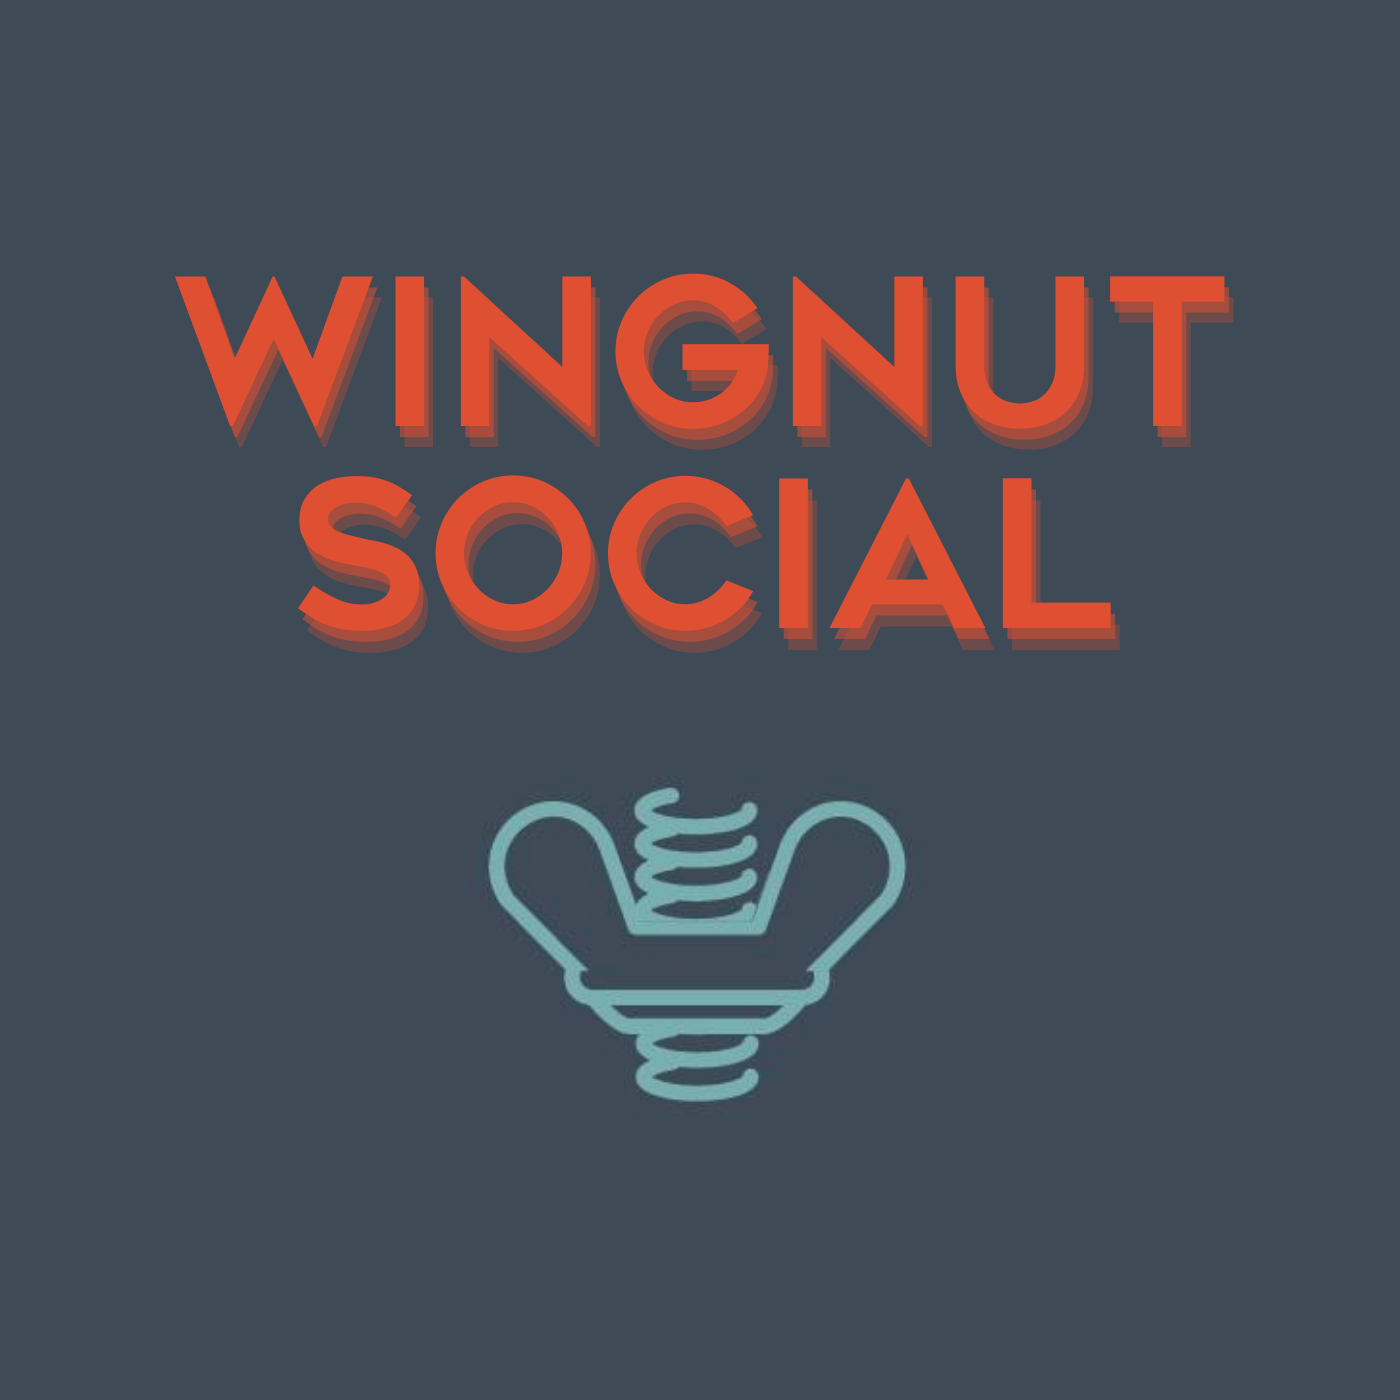 Wingnut Social: The Social Media Marketing and Business Podcast